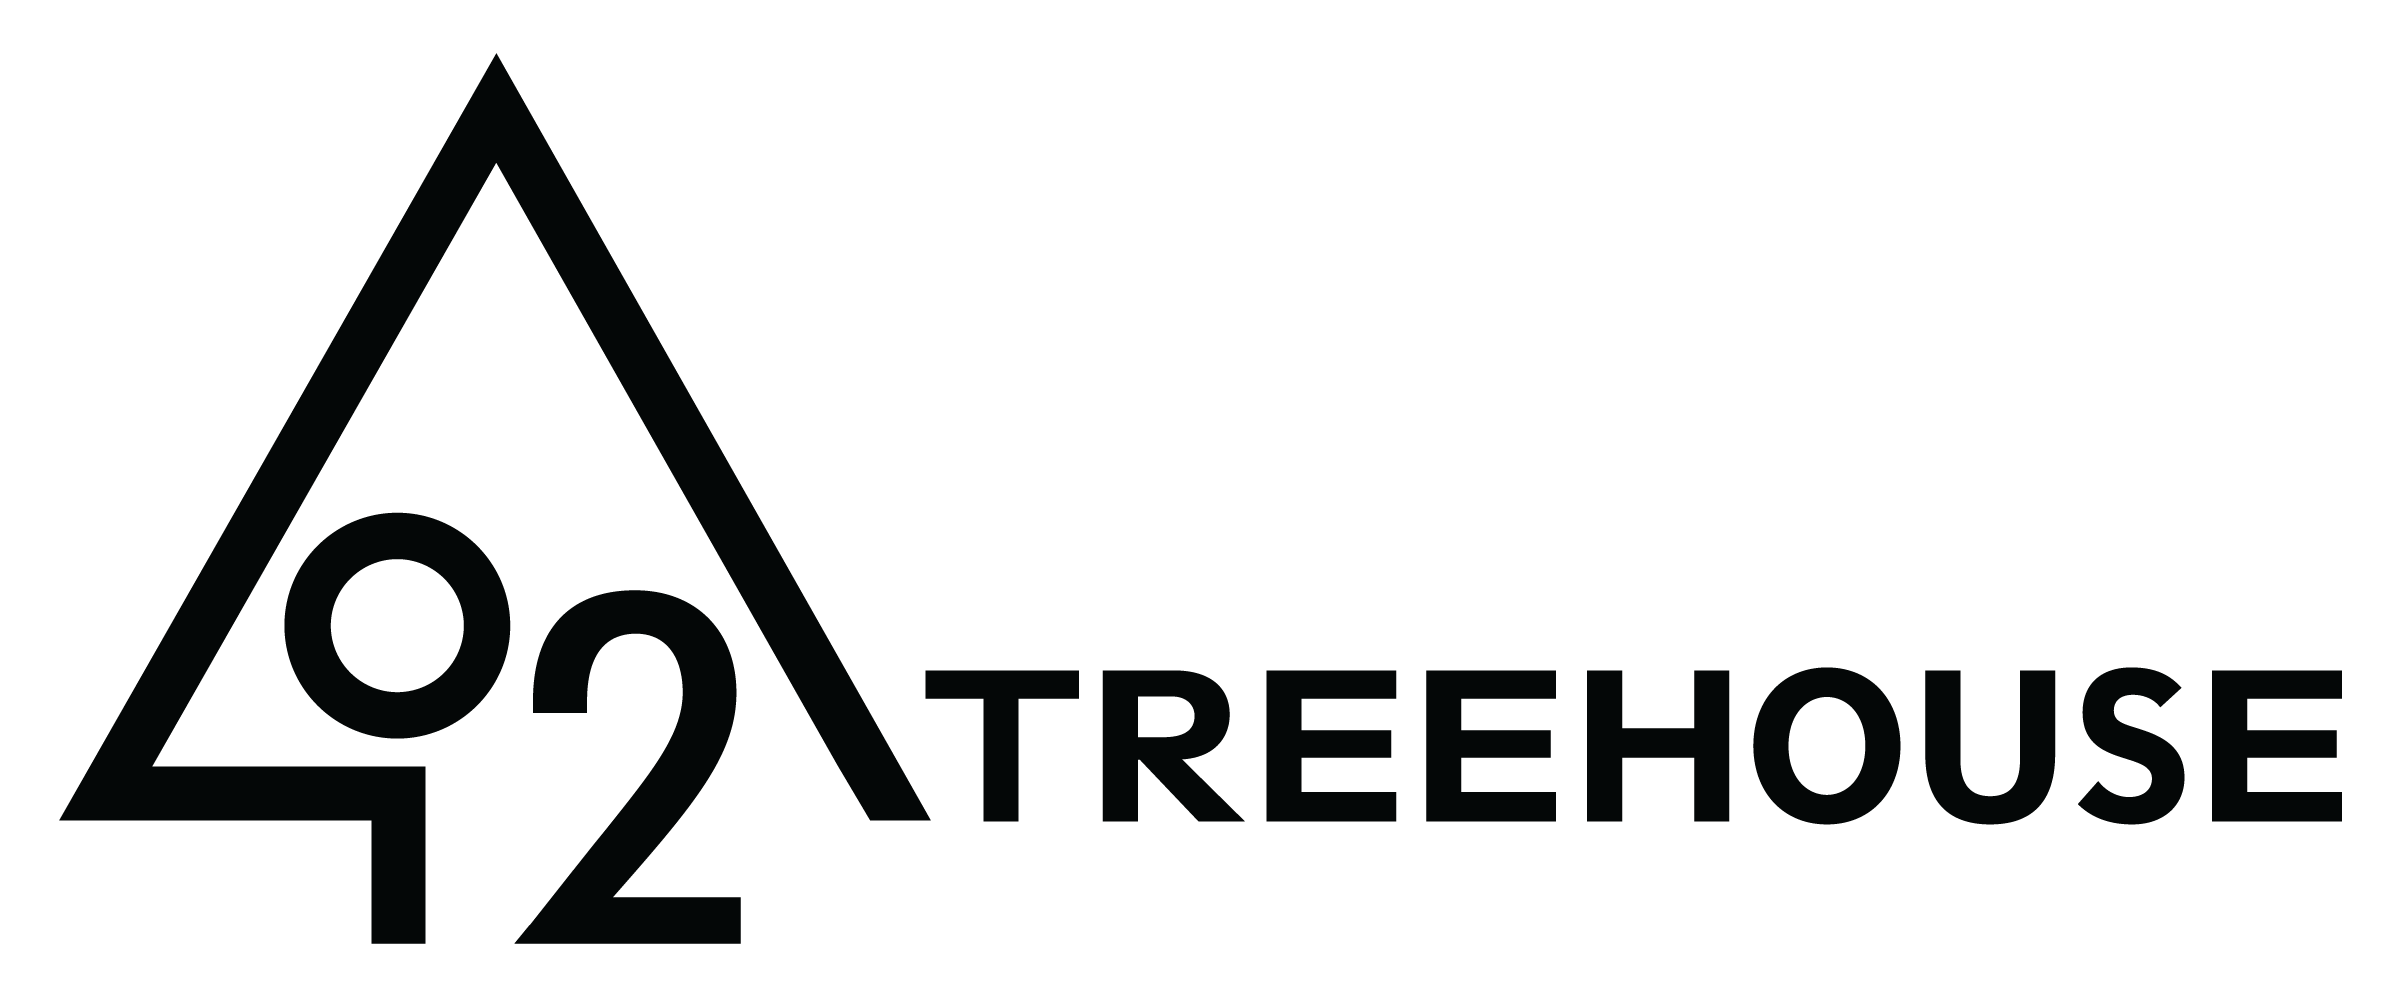 Custom Builder O2 Treehouse Set to Launch Equity Crowdfunding Campaign on StartEngine